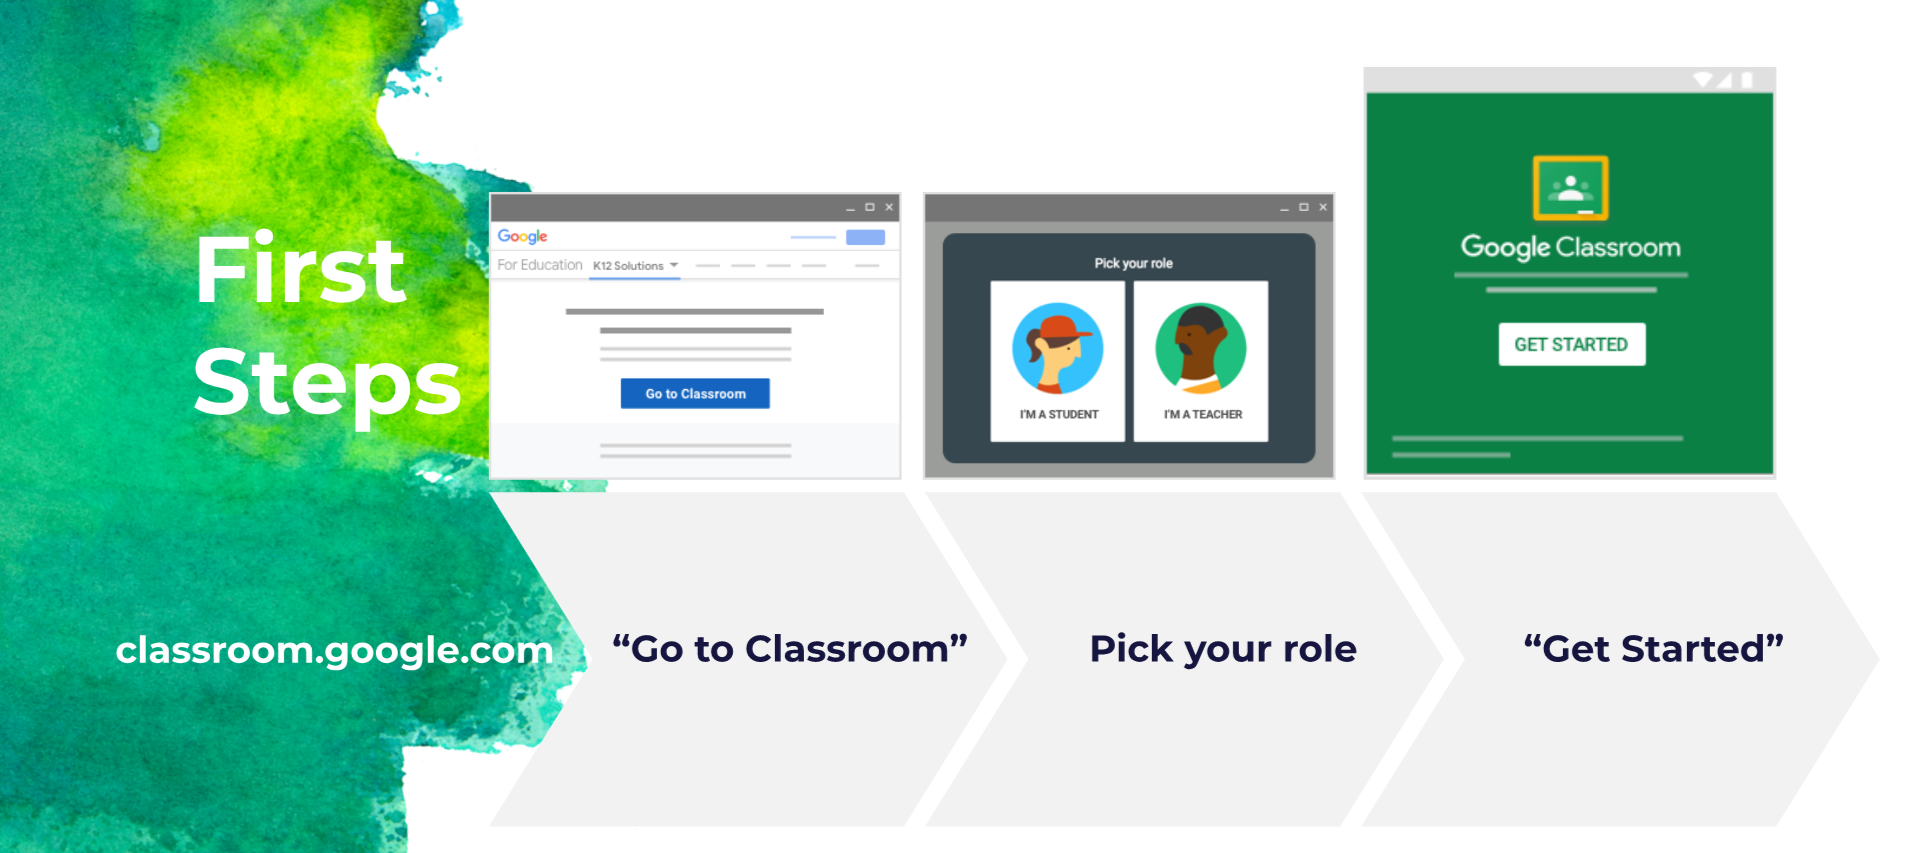 Picture showing steps for starting Google Classroom, including visiting the Web site, choosing teacher or student role, then launching the application